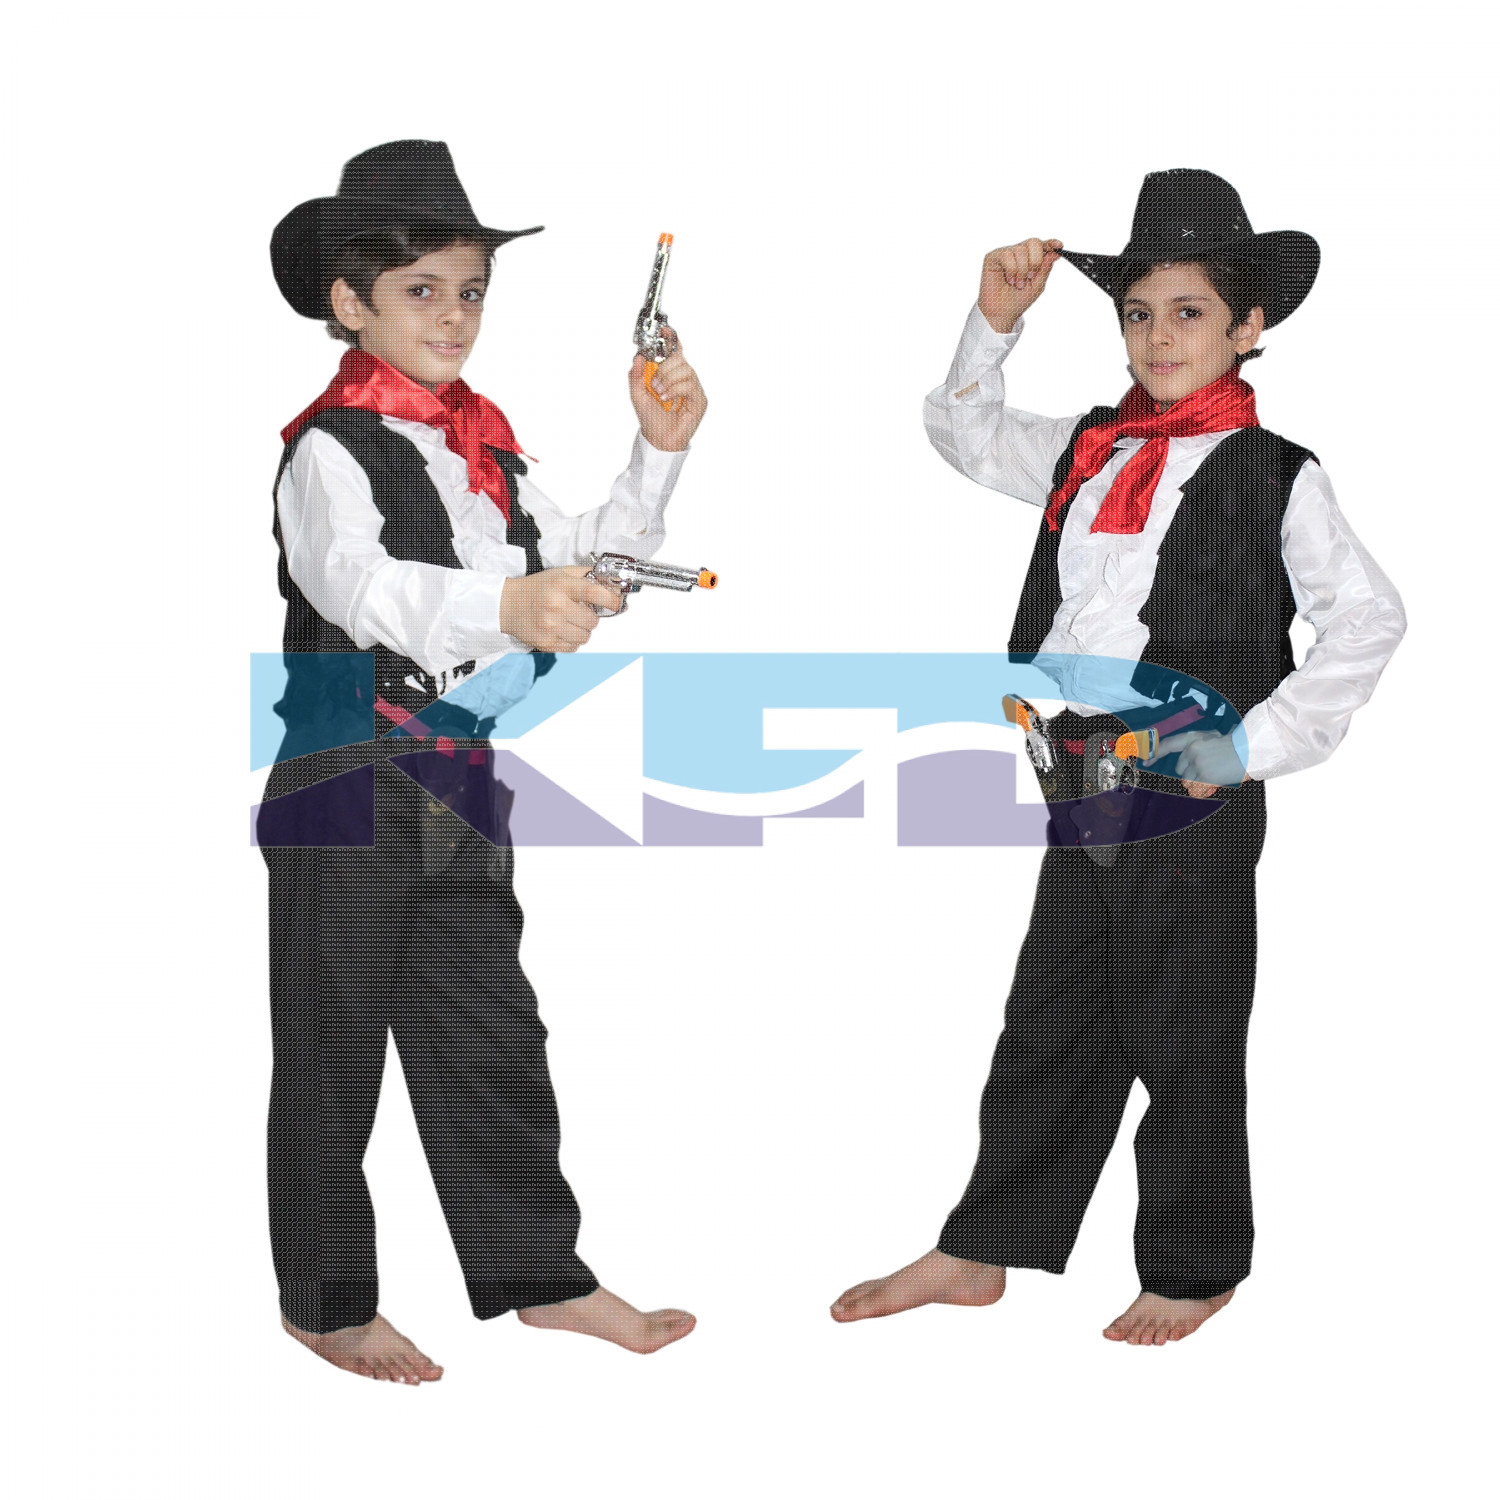 Cow Boy fancy dress for kids,Horse Riding Costume for Annual function/Theme Party/Competition/Stage Shows/Birthday Party Dress